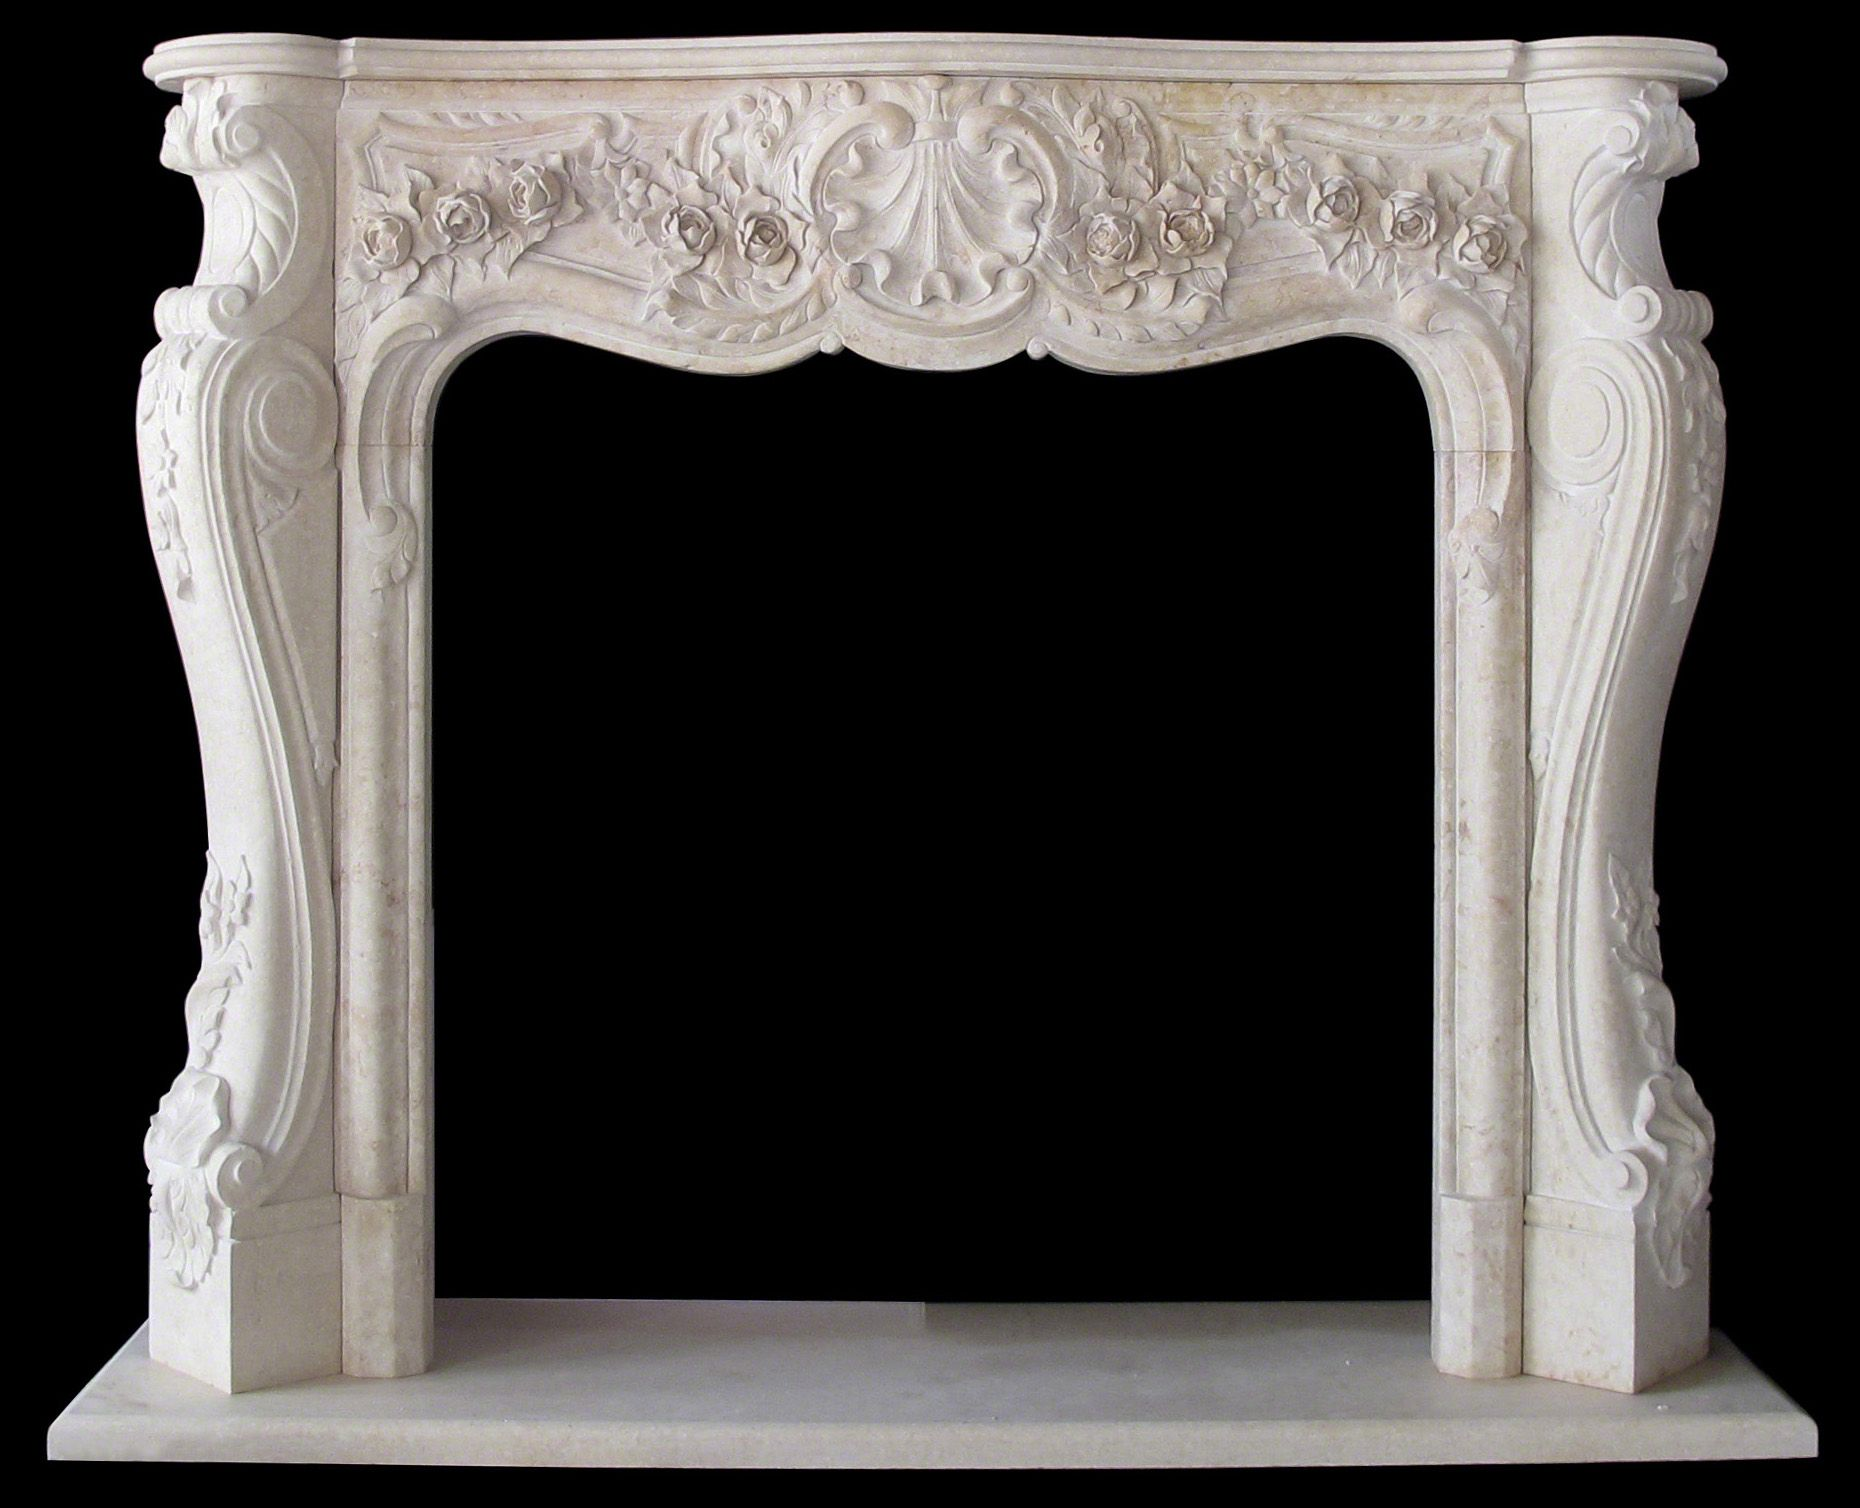 Marble fireplace surround sale travertine italian for Marble mantels for sale